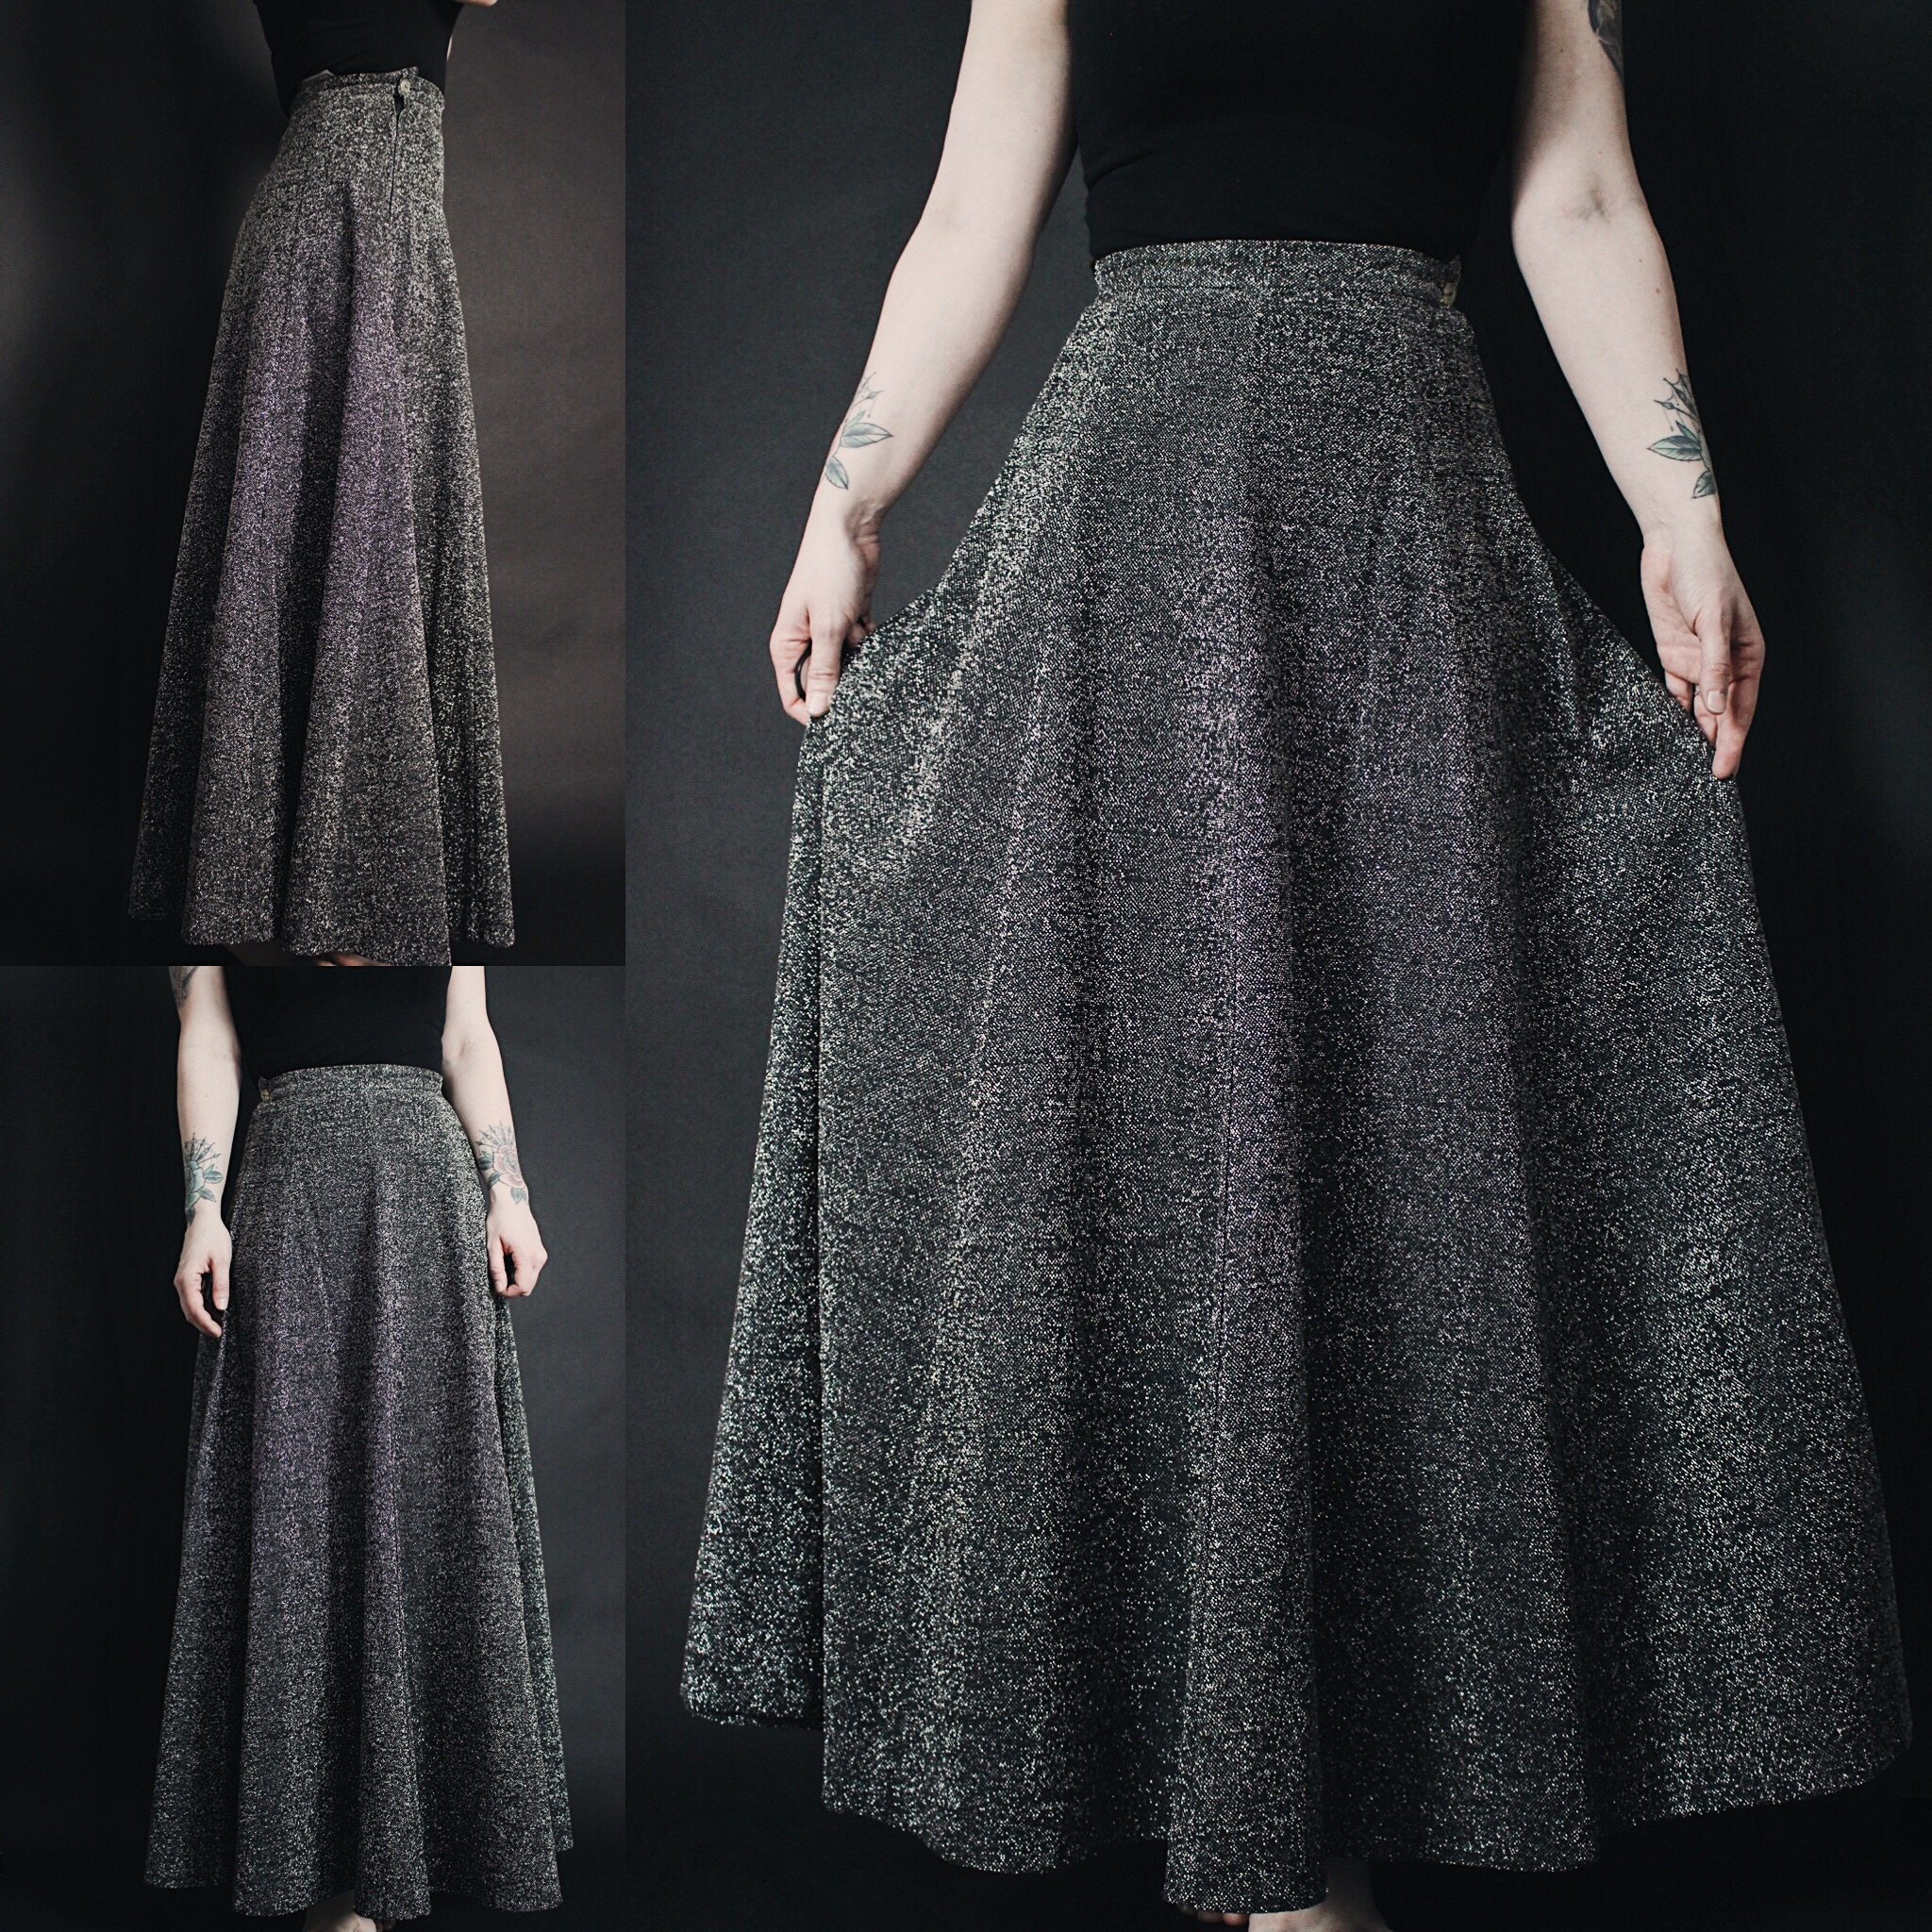 fd37bd52d RESERVED FOR KYLIE - Vintage 90s Silver Glitter Metallic A-Line Maxi Skirt